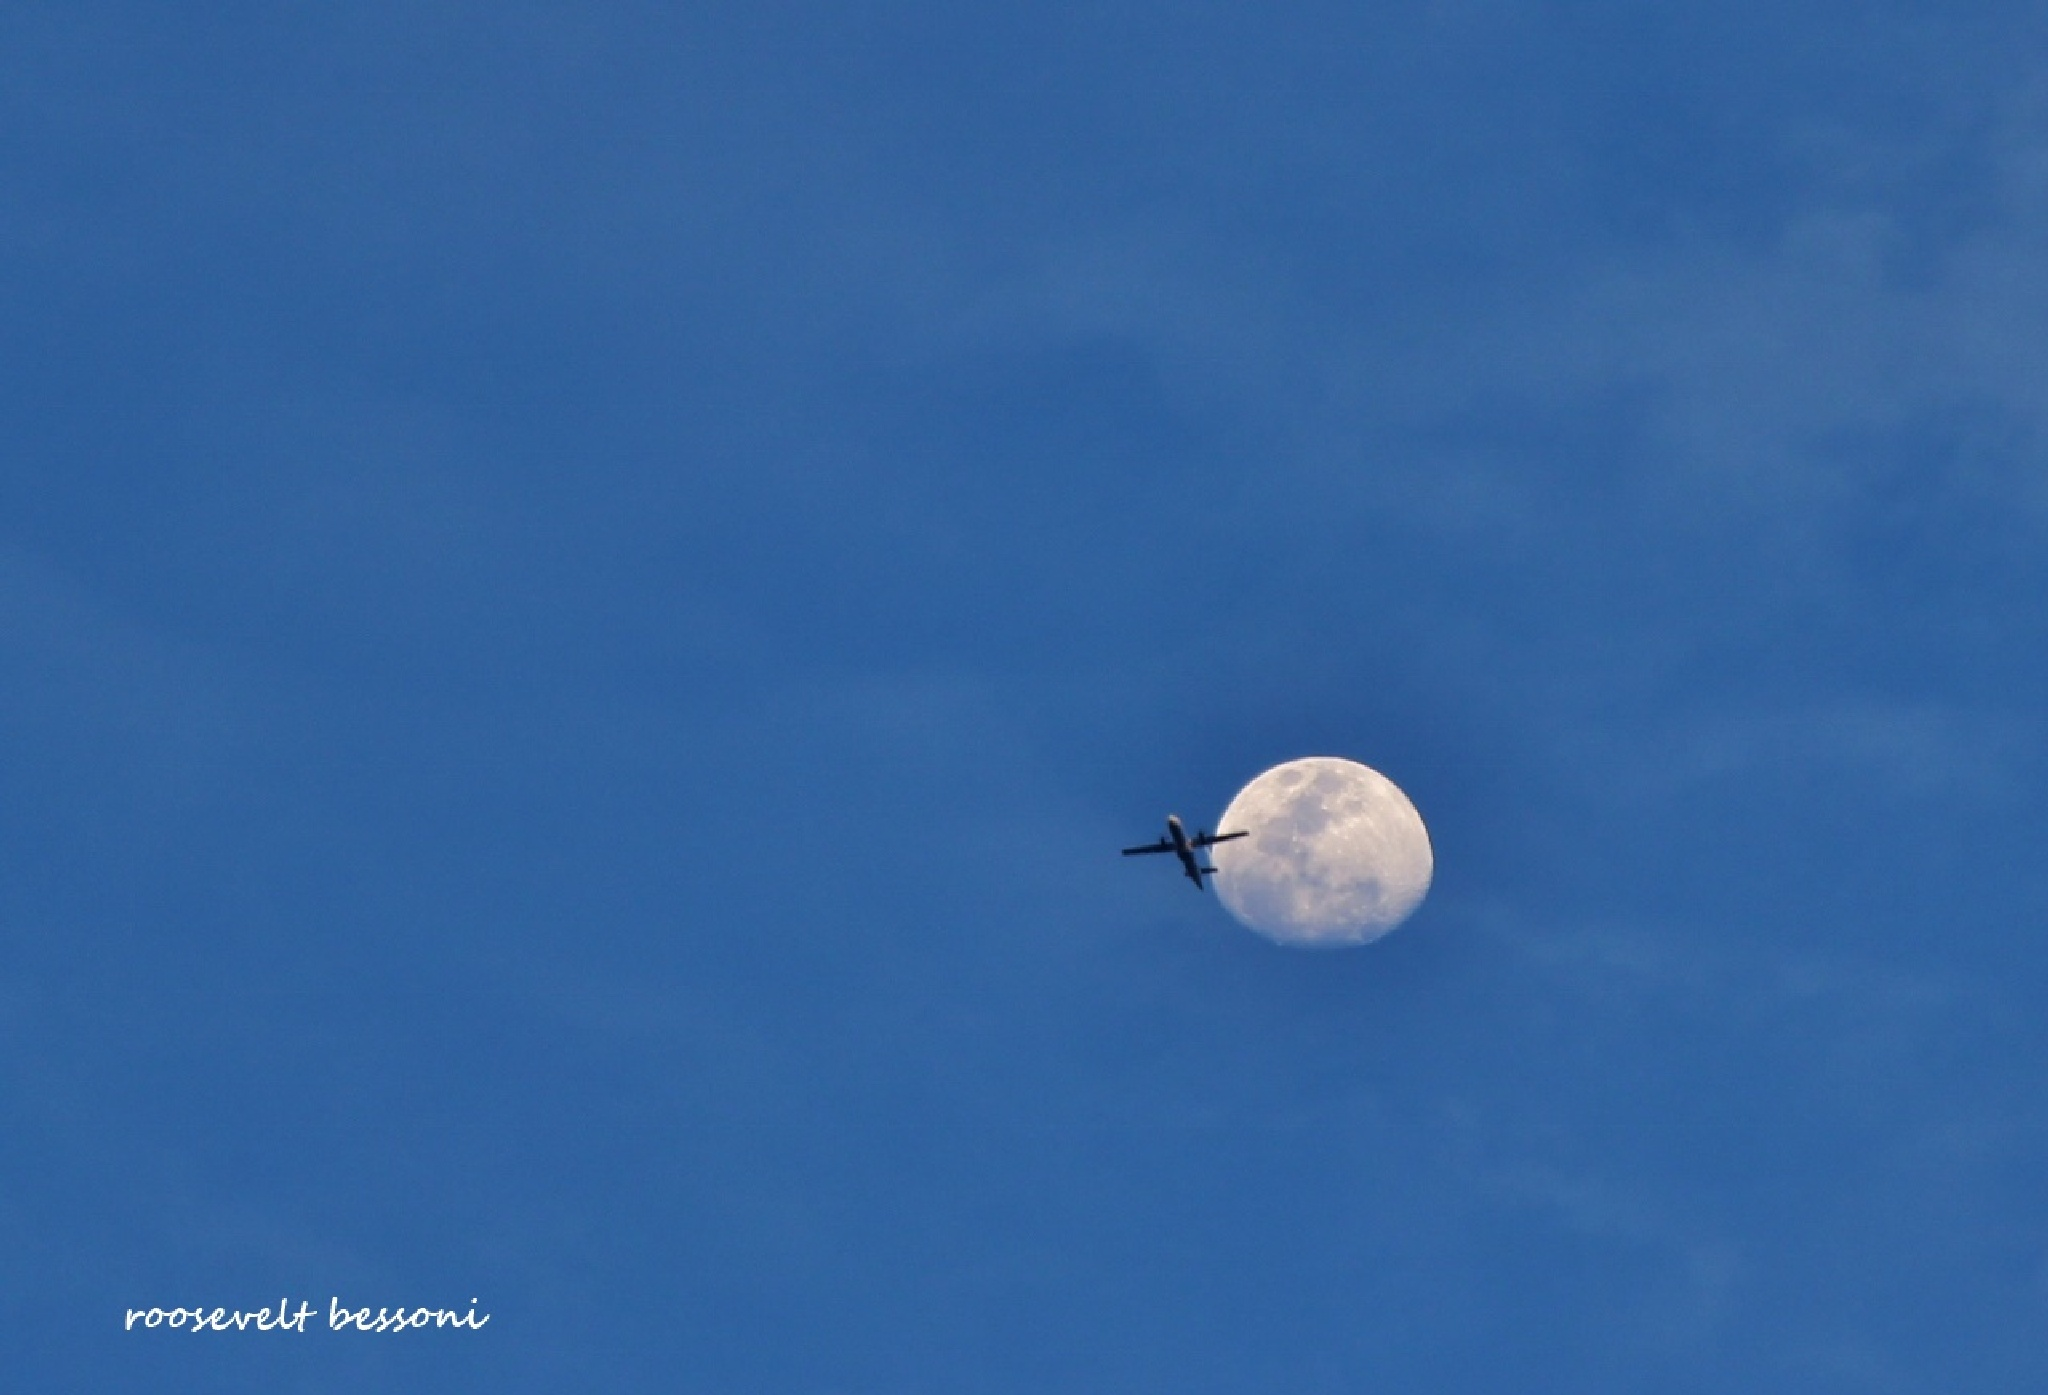 a Lua e o avião (the moon and the plane) by RooseveltBessoni